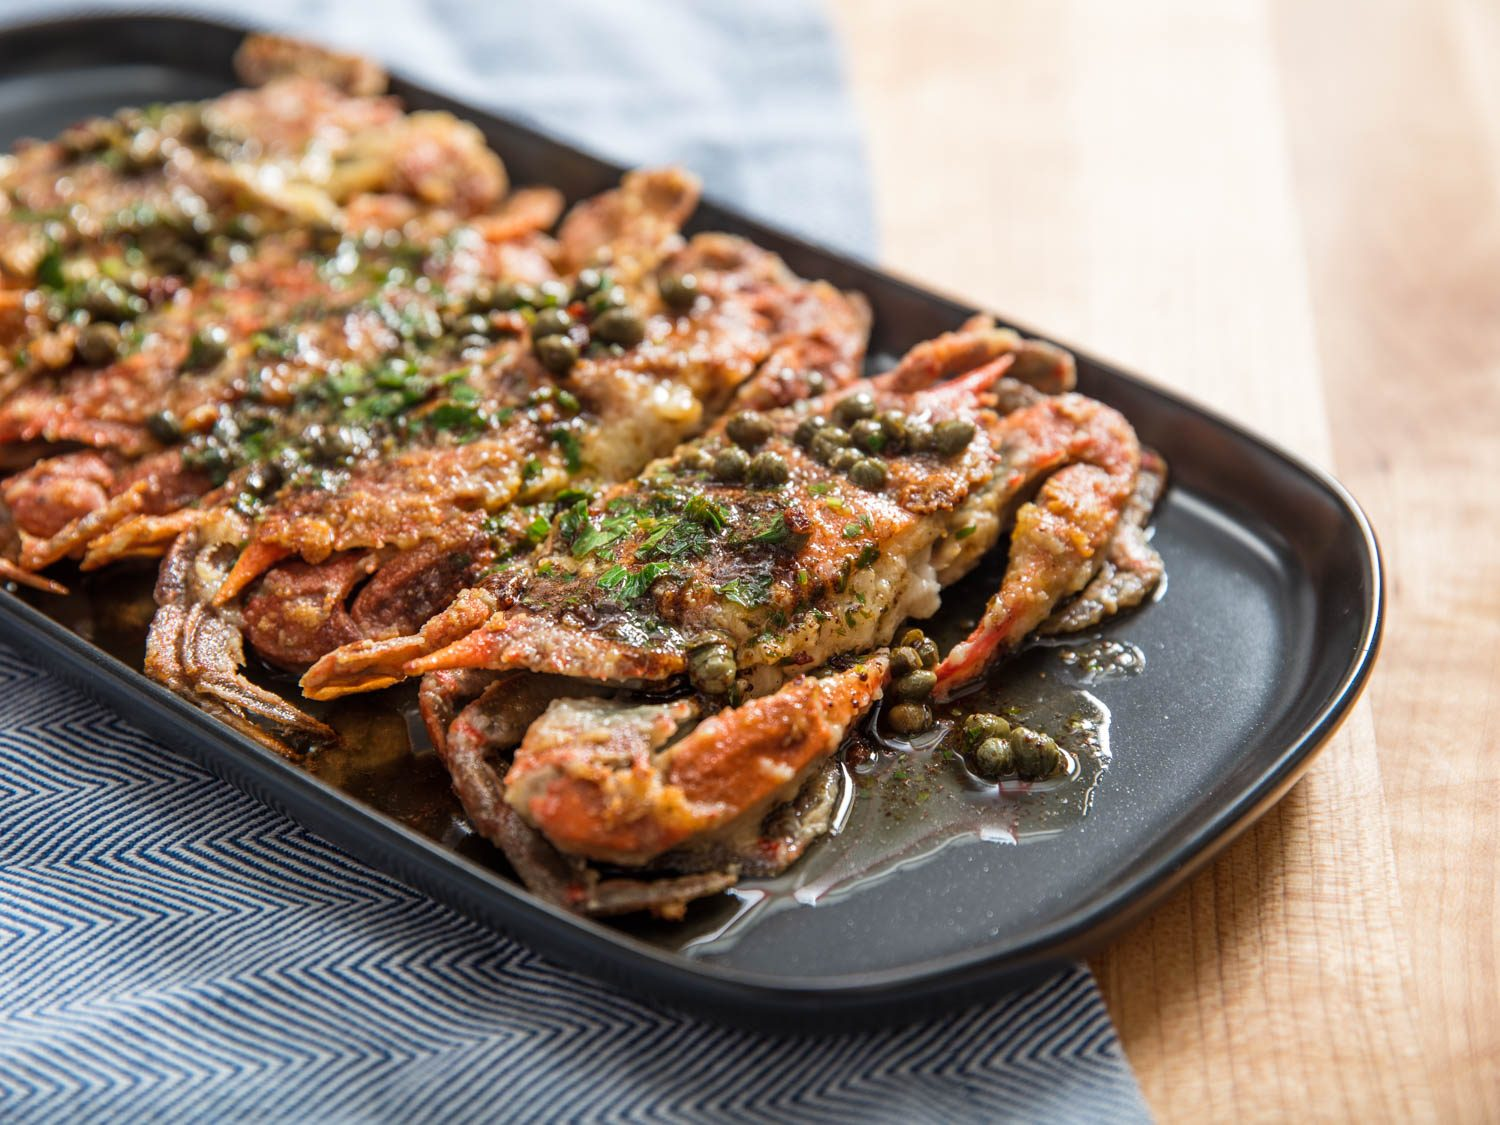 Sautéed Soft-Shell Crabs With Lemon-Butter Pan Sauce